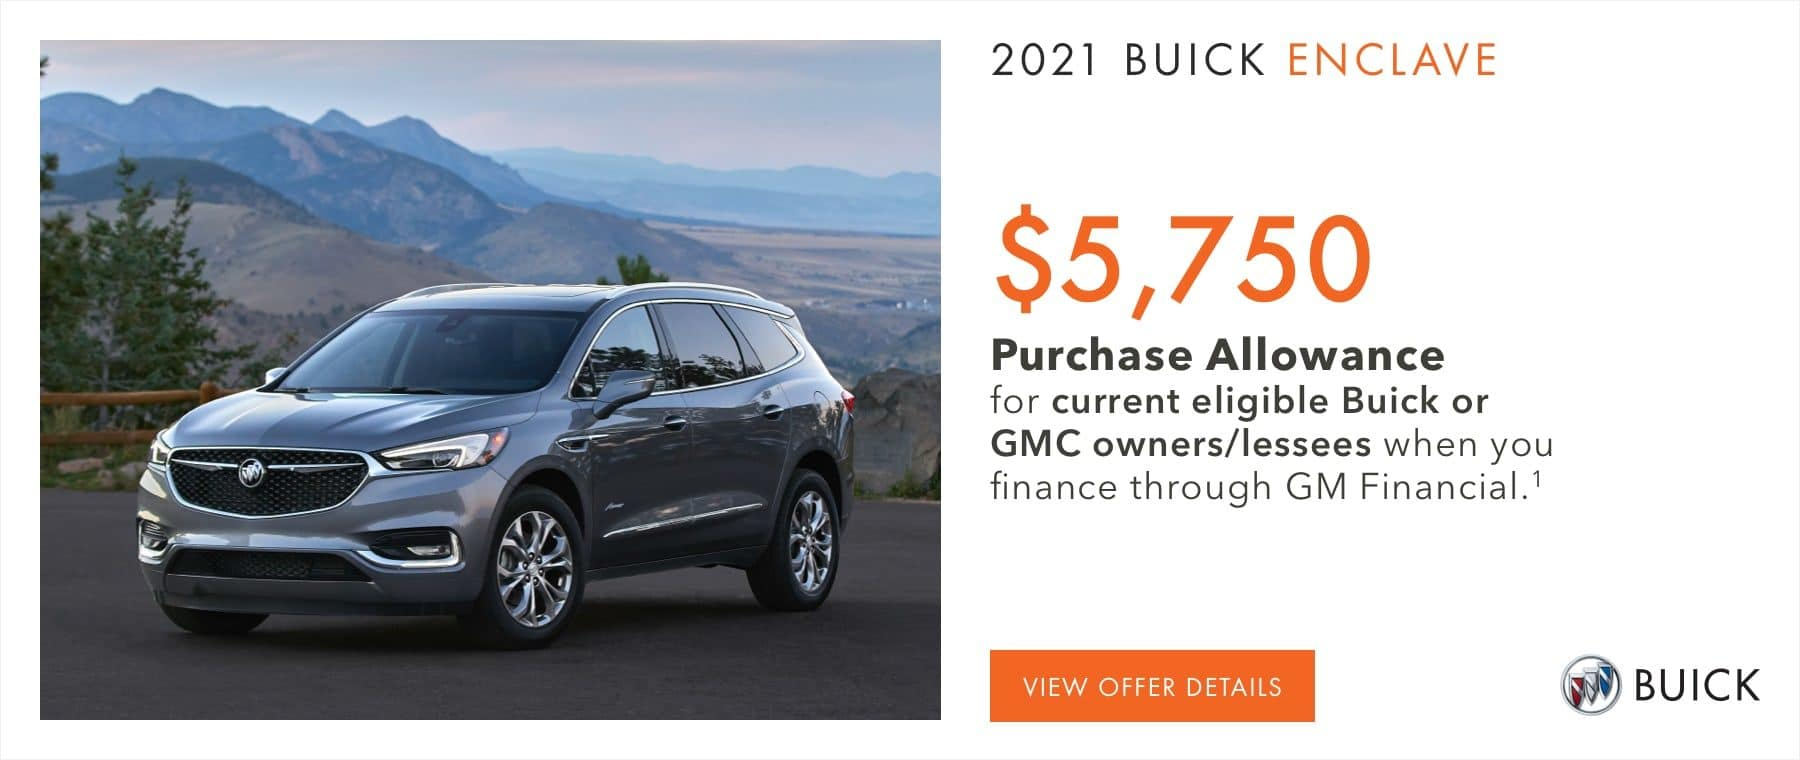 $5,750 Purchase Allowance for current eligible Buick or GMC owners/lessees when you finance through GM Financial.1